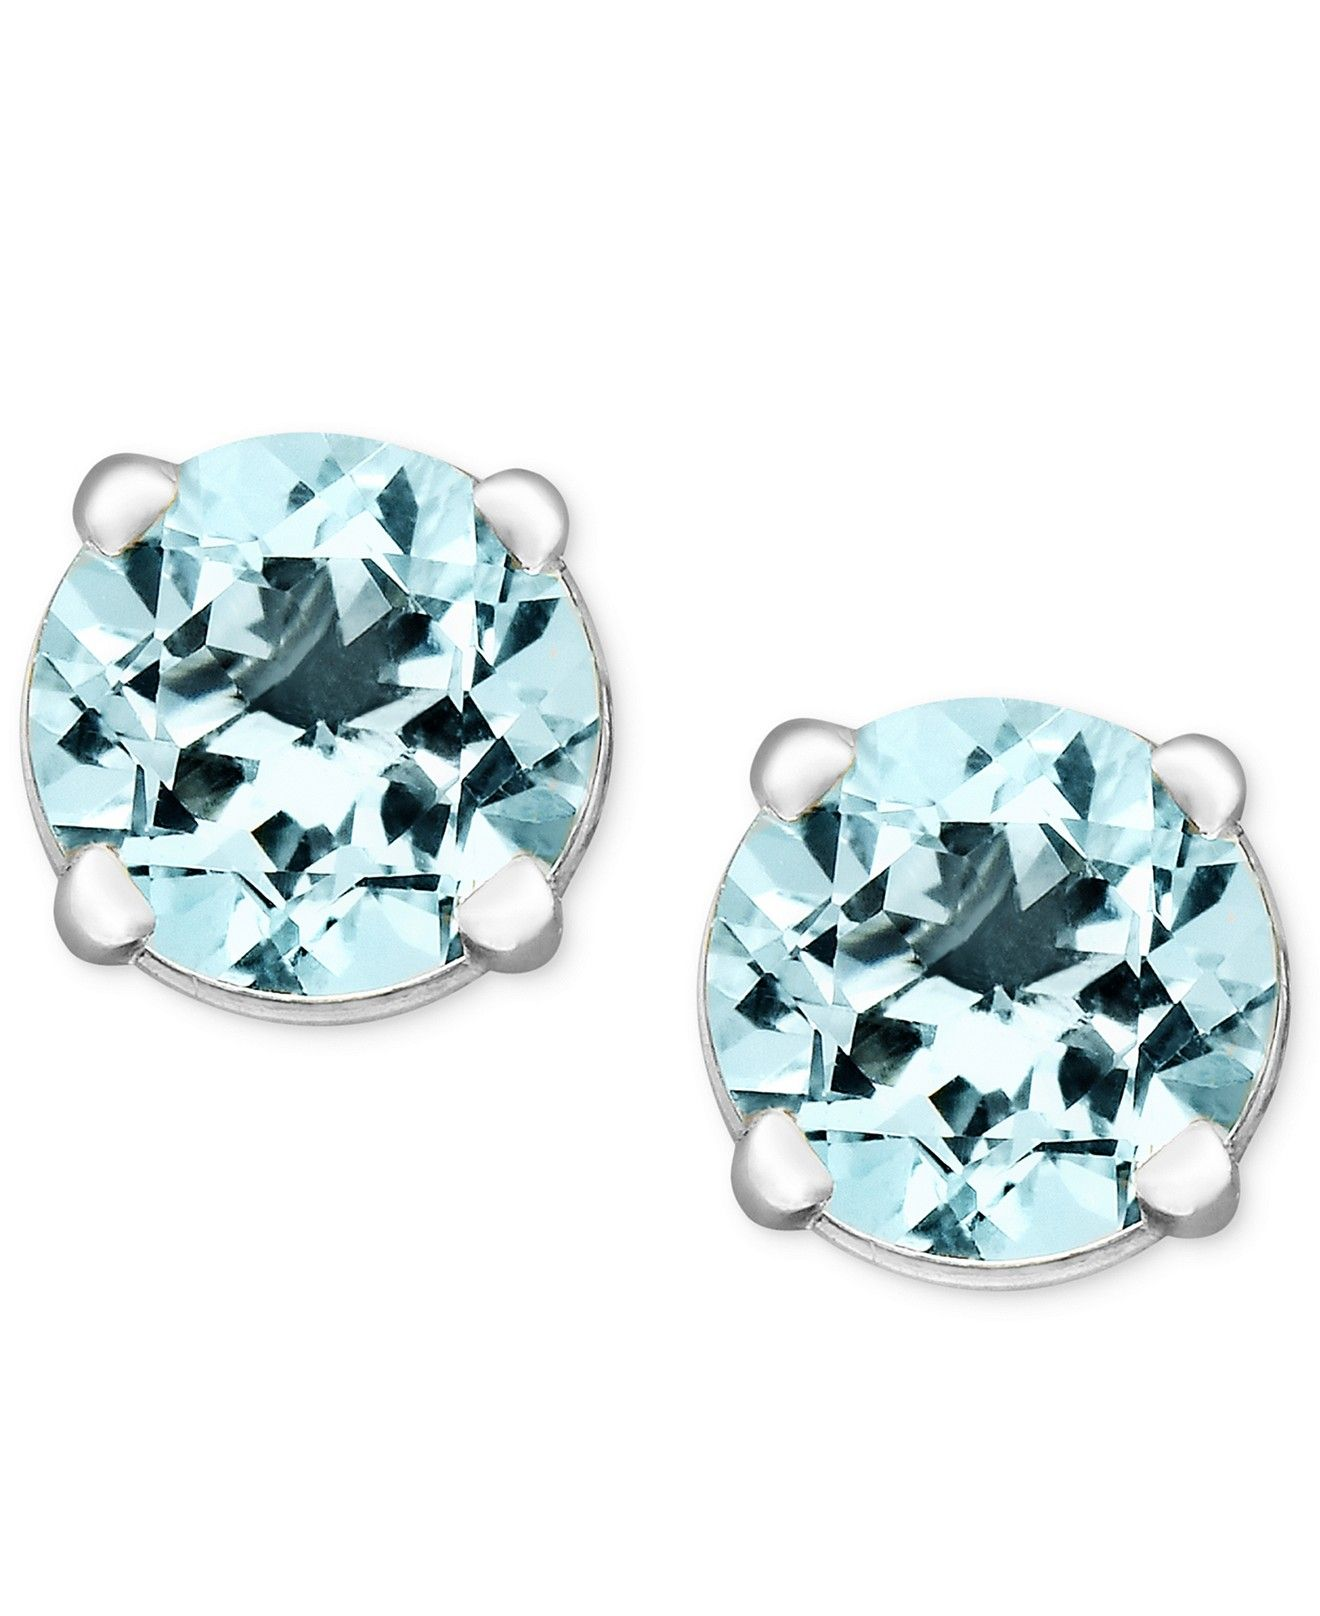 aquamarine earrings marine stud set birthstone march round aqua white gold bezel